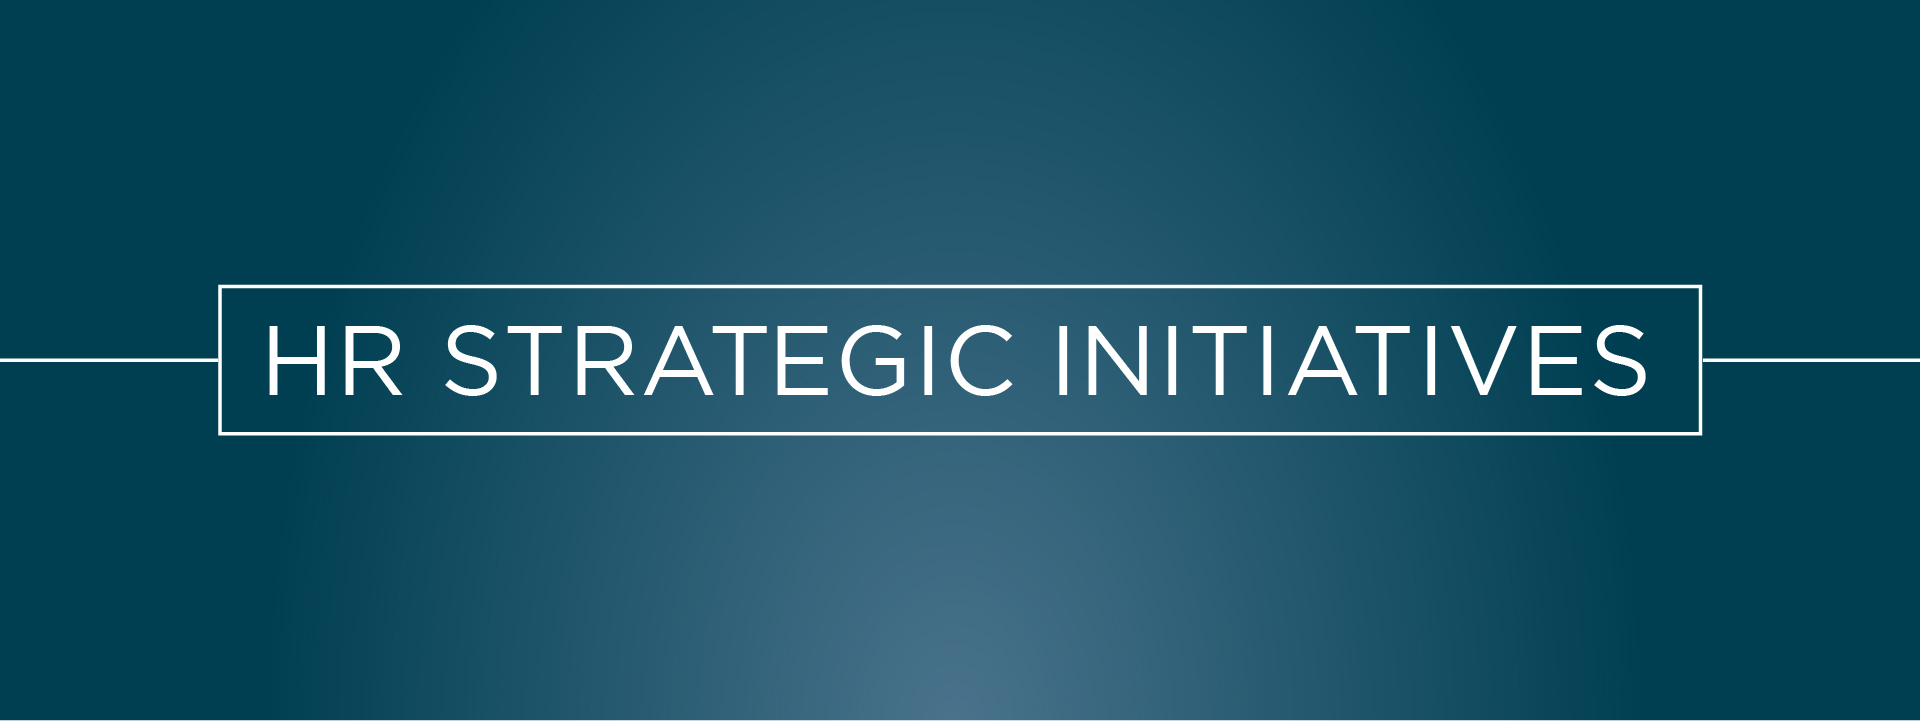 HRStrategic1920x720